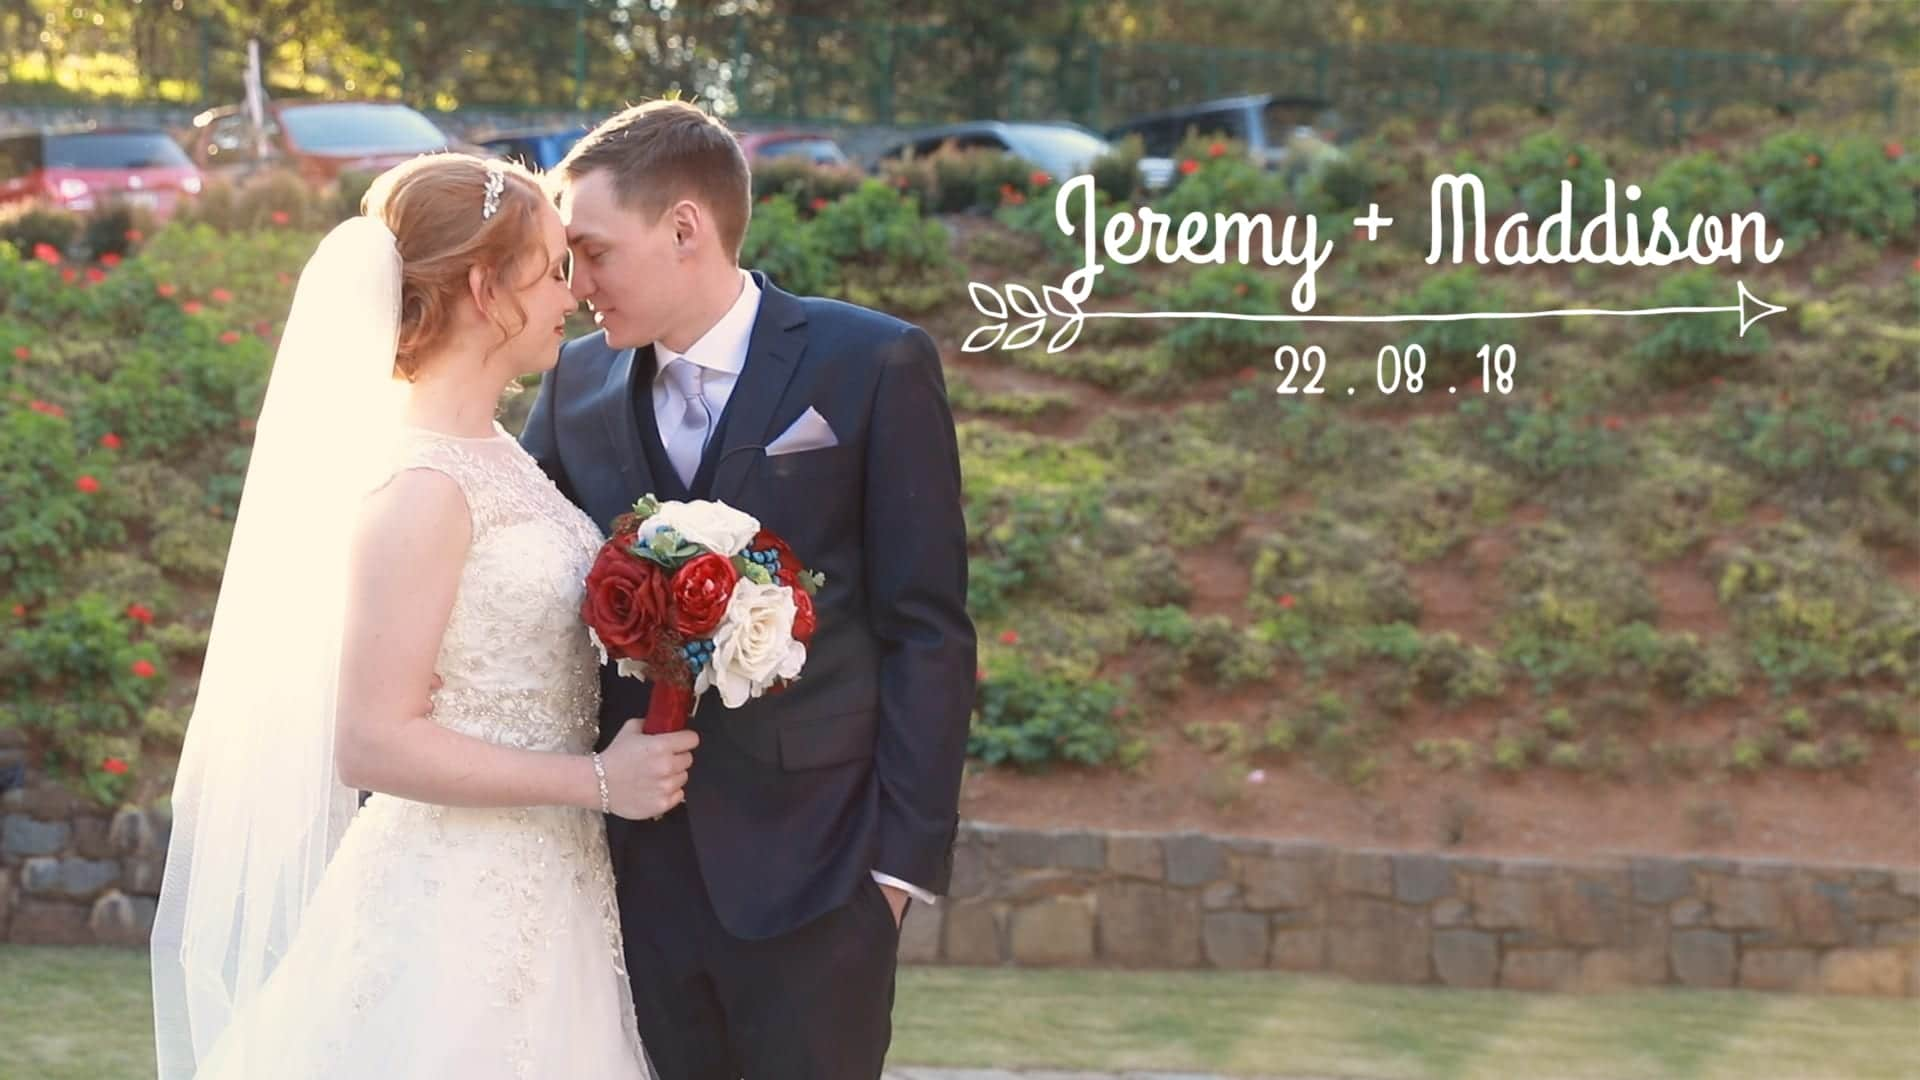 Short 'n' Sweet wedding ceremony video